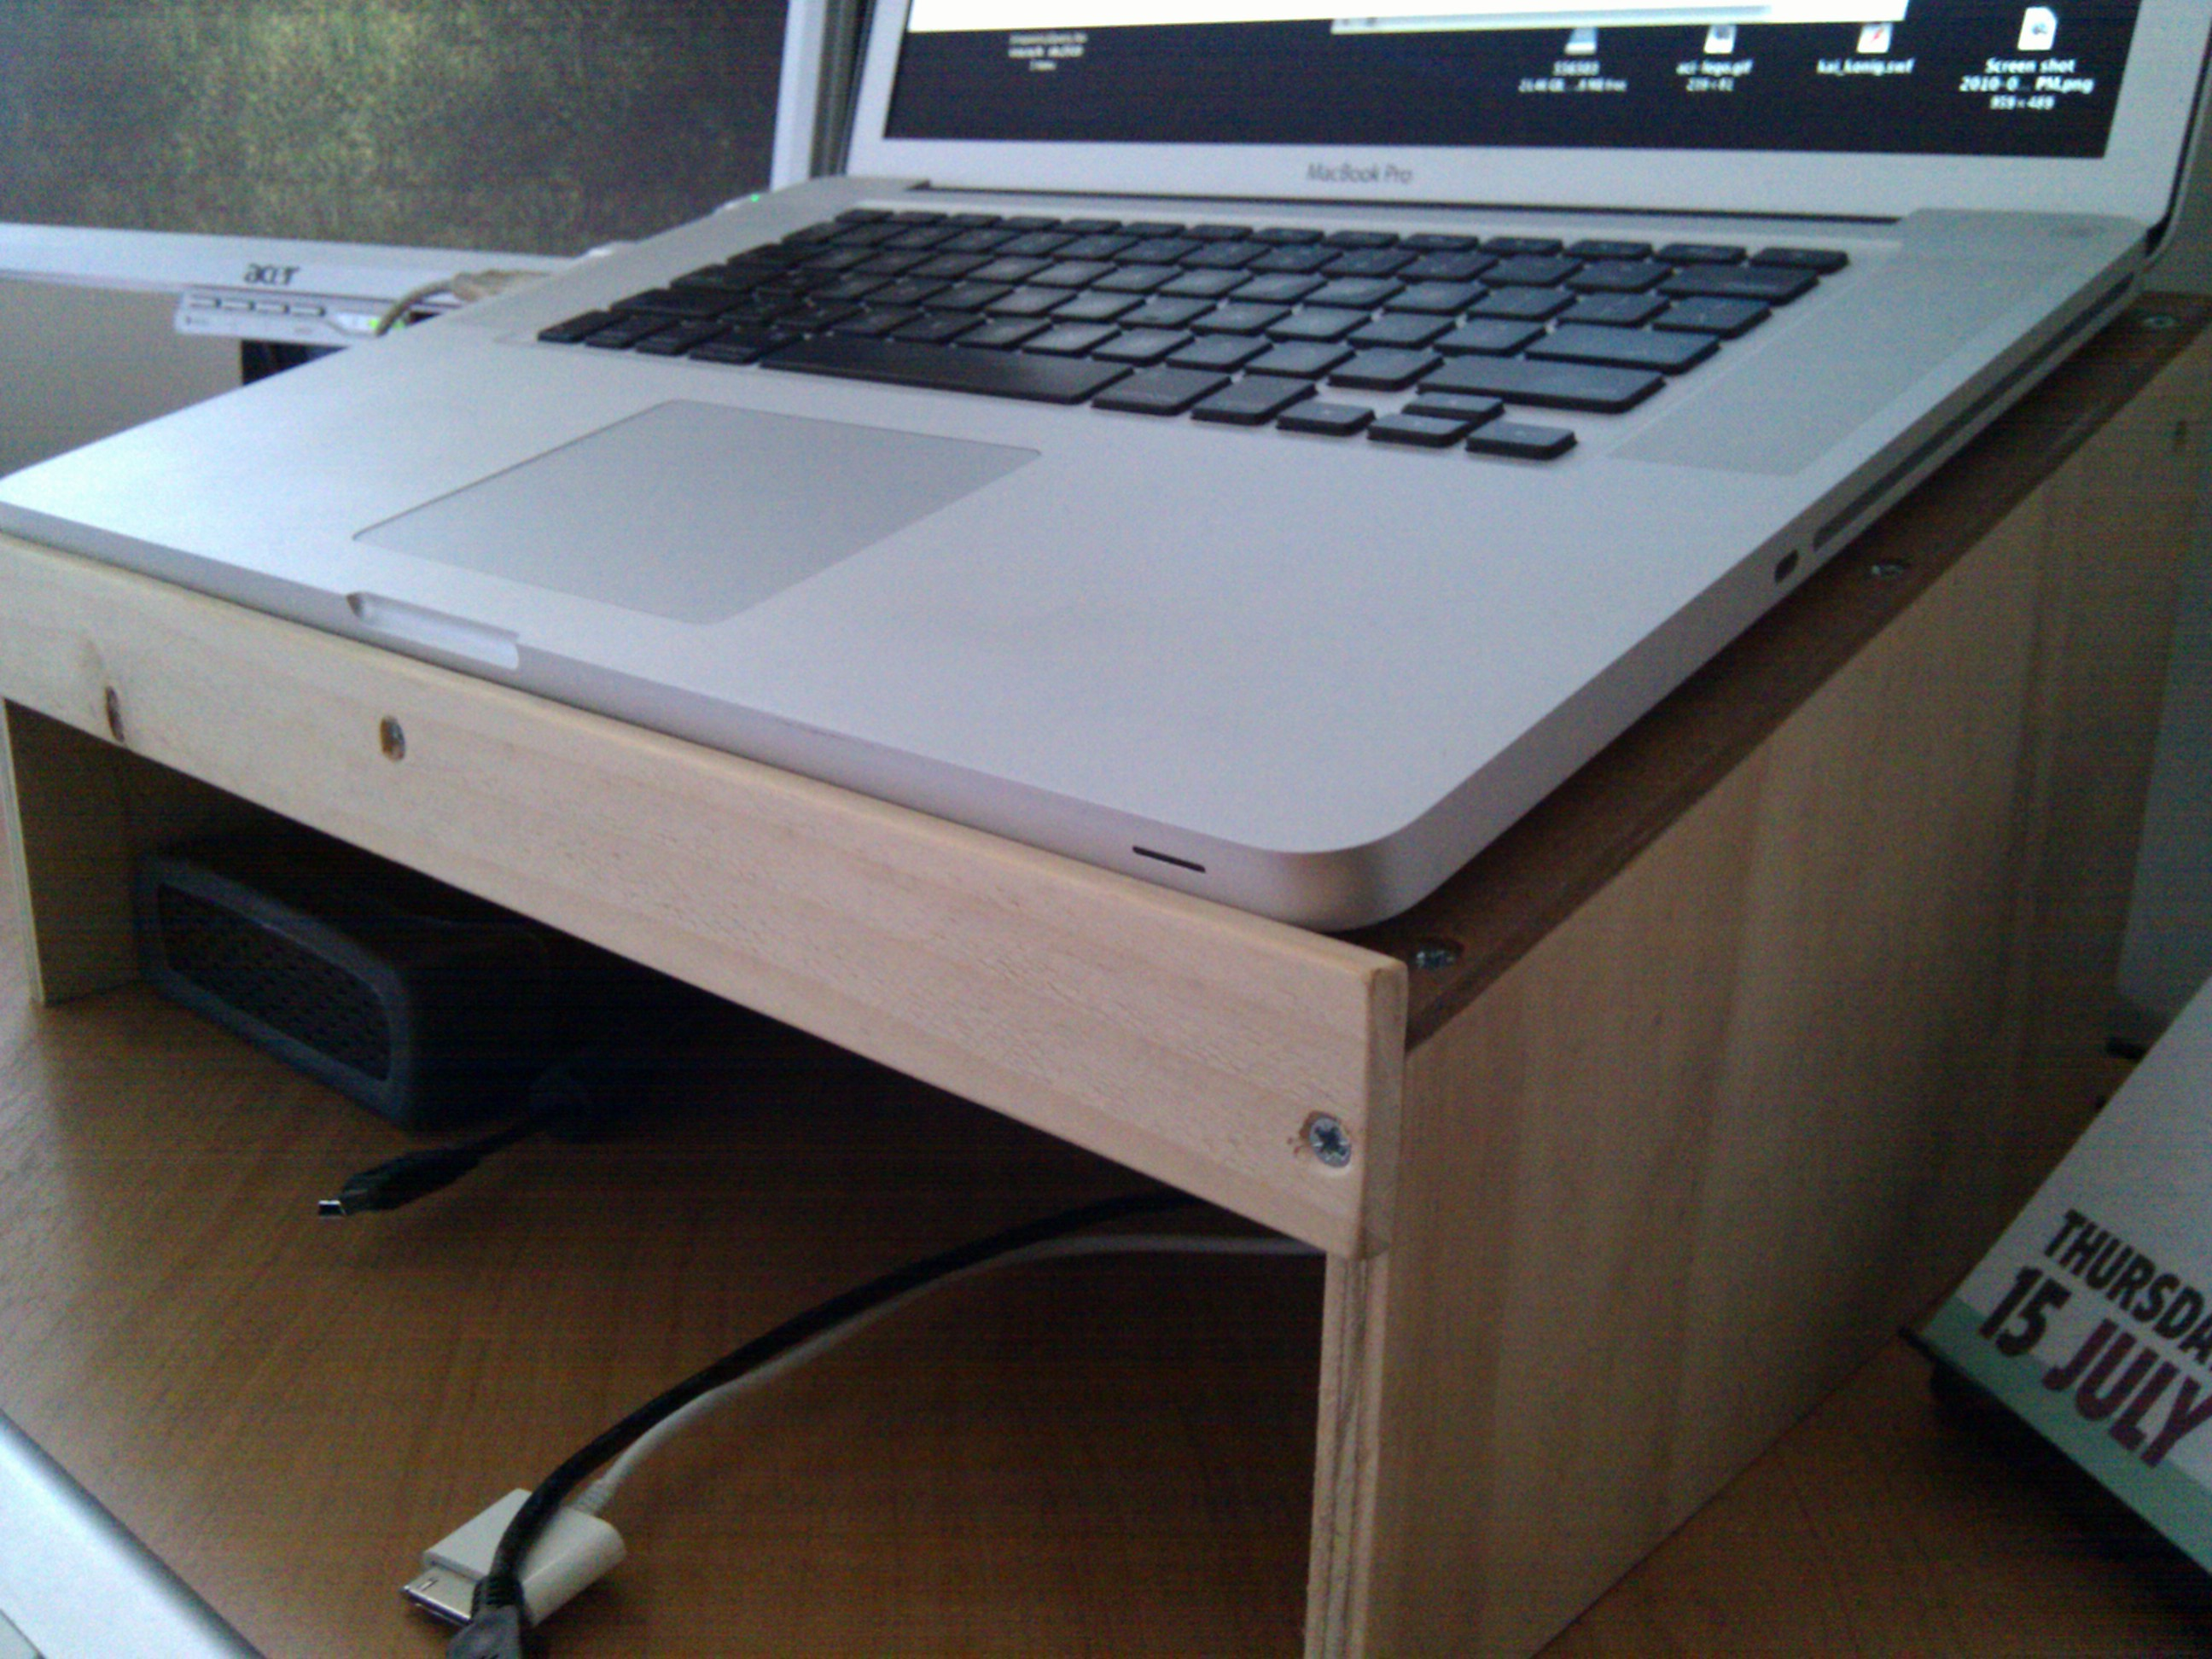 My new desk: awesome laptop and monitor stands for Macbook Pro